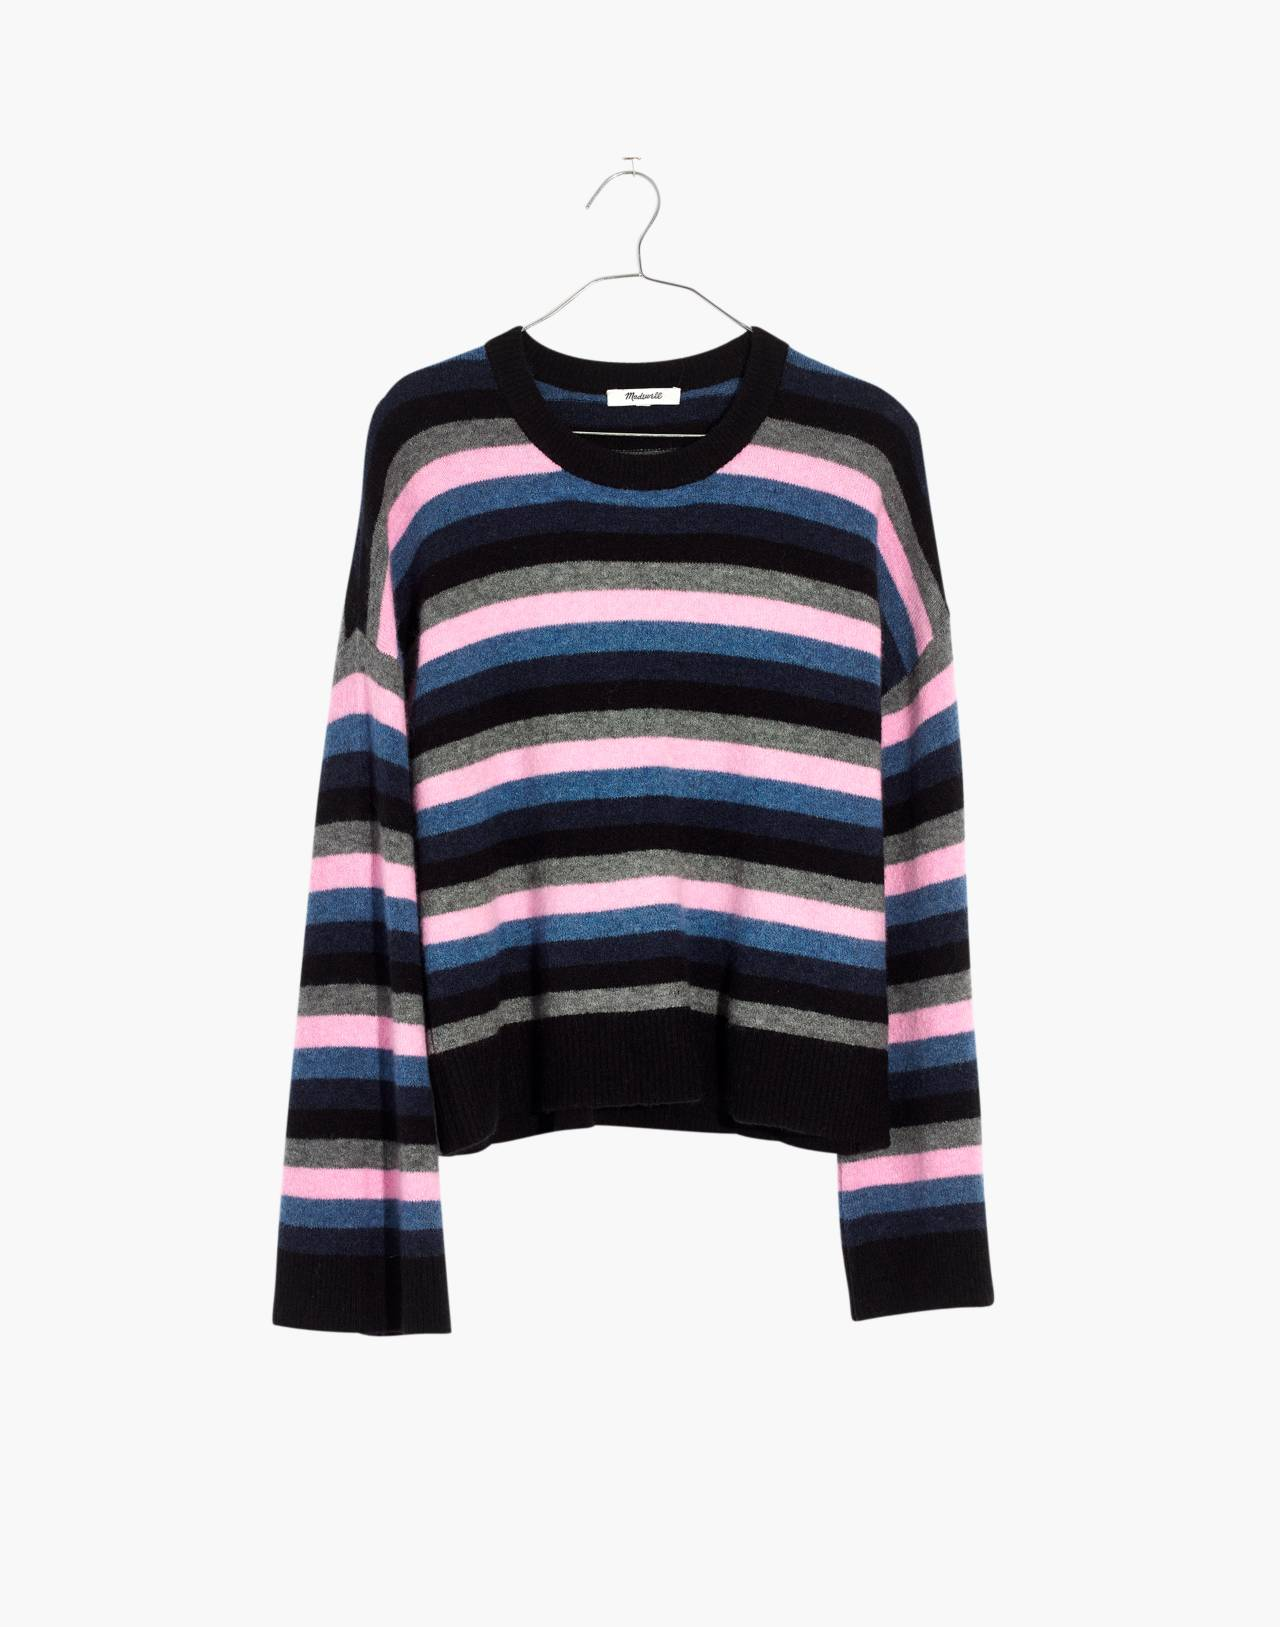 Cardiff Striped Crewneck Sweater in Coziest Yarn in true black image 4